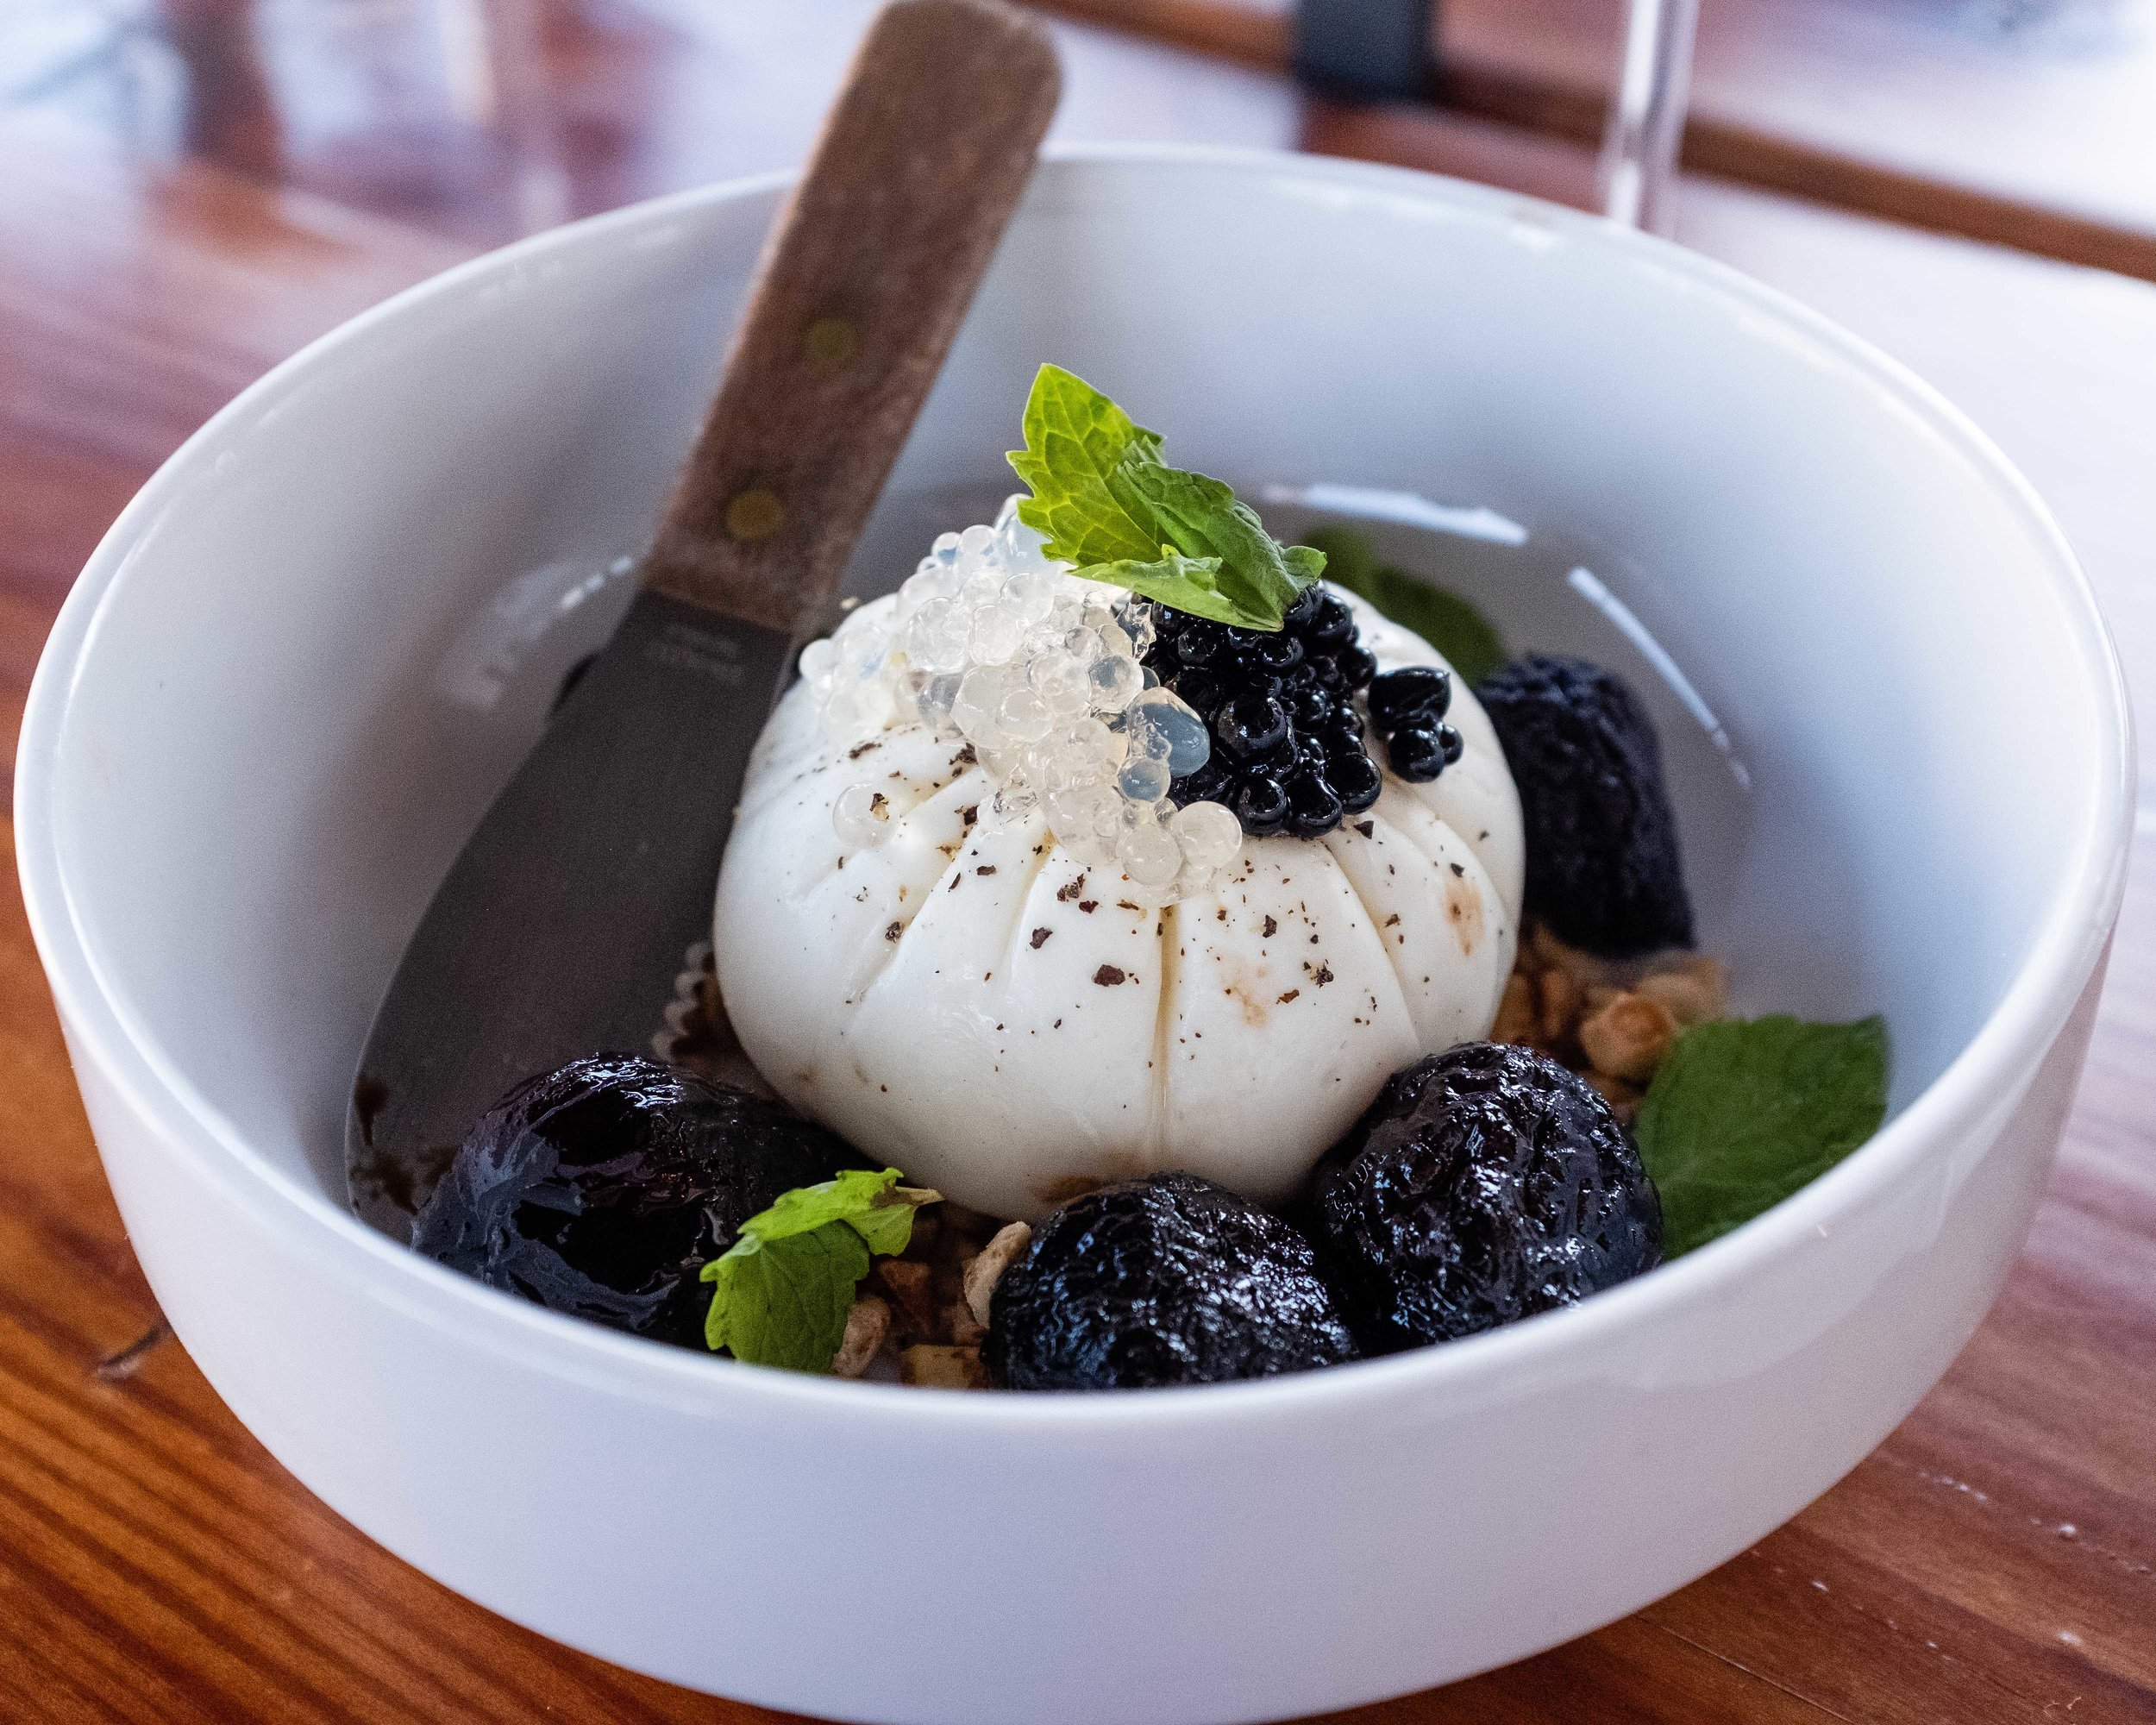 Smoked burrata with figs, champagne pearls, balsamic pearls, roasted nuts, and mint at Pizzicletta in Flagstaff, AZ - Joseph Berg lifestyle photography.